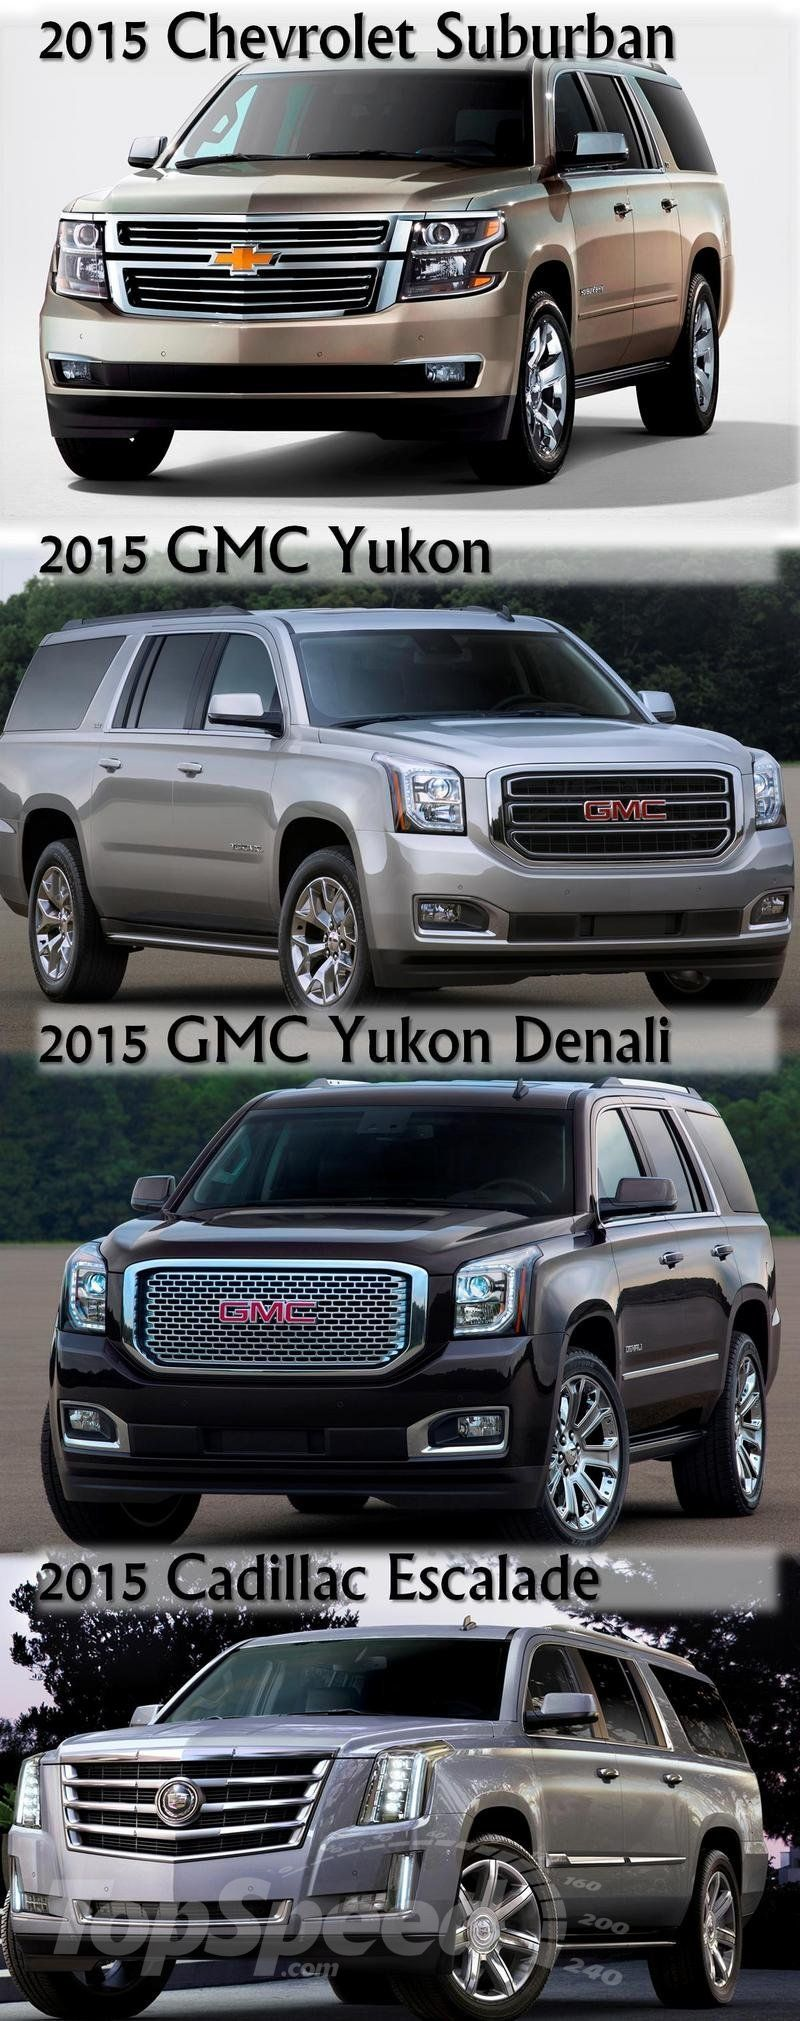 2015 Gmc Yukon Xl Gallery 527844 Gmc Yukon Xl Suv Cars Gmc Yukon